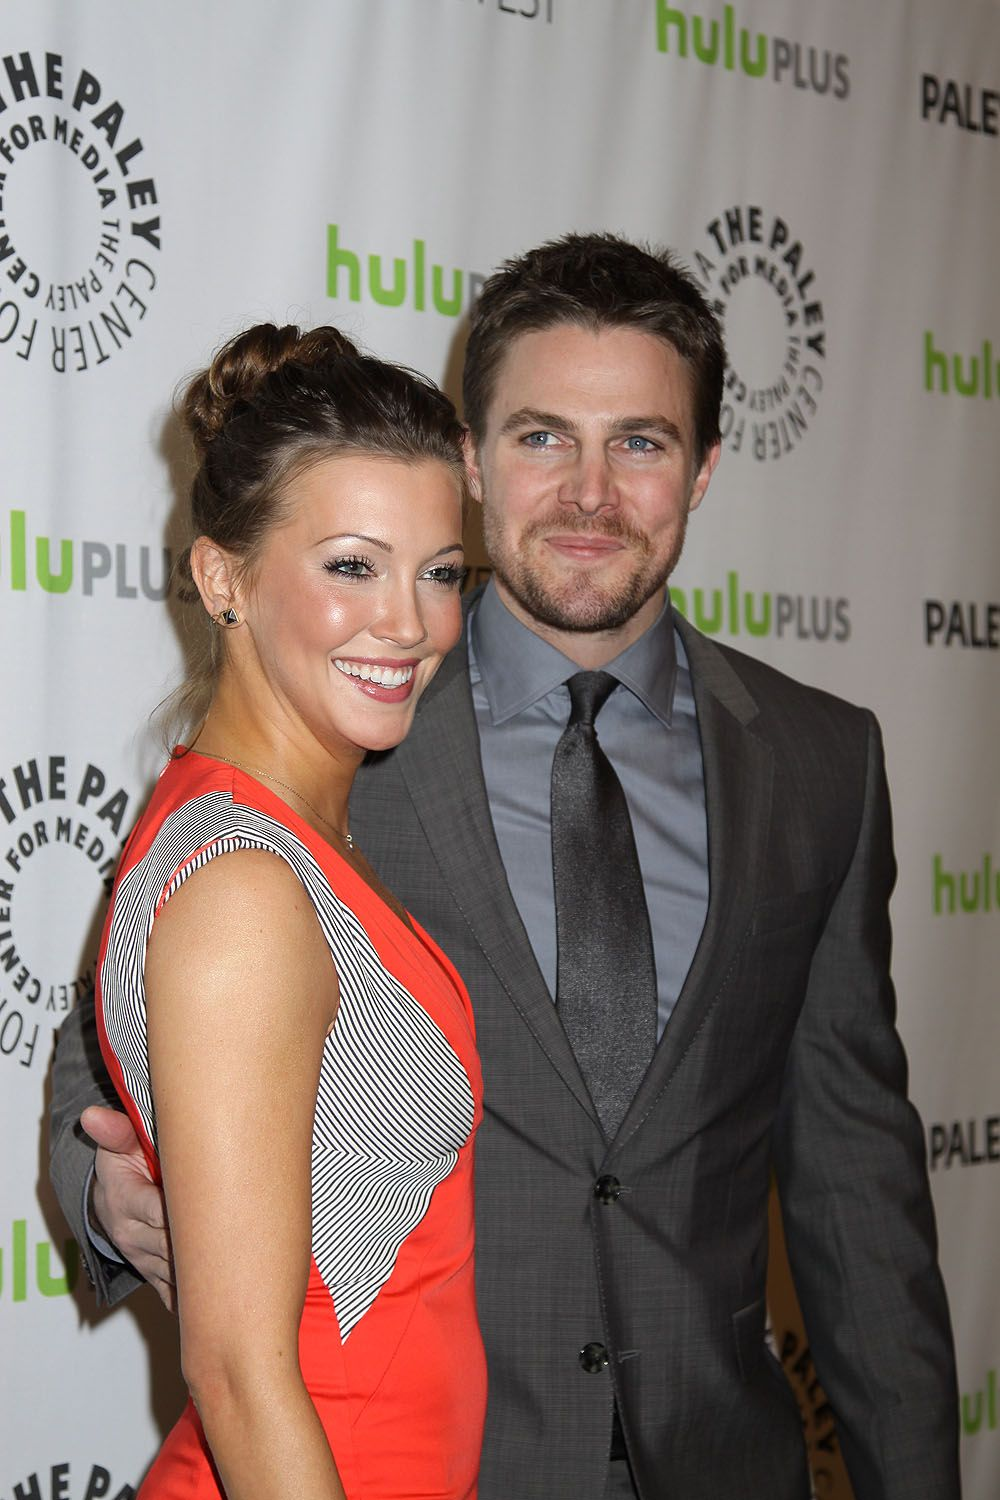 stephen amell and katie cassidy | Stephen Amell and Katie Cassidy at the 30th Annual PaleyFest: The ...